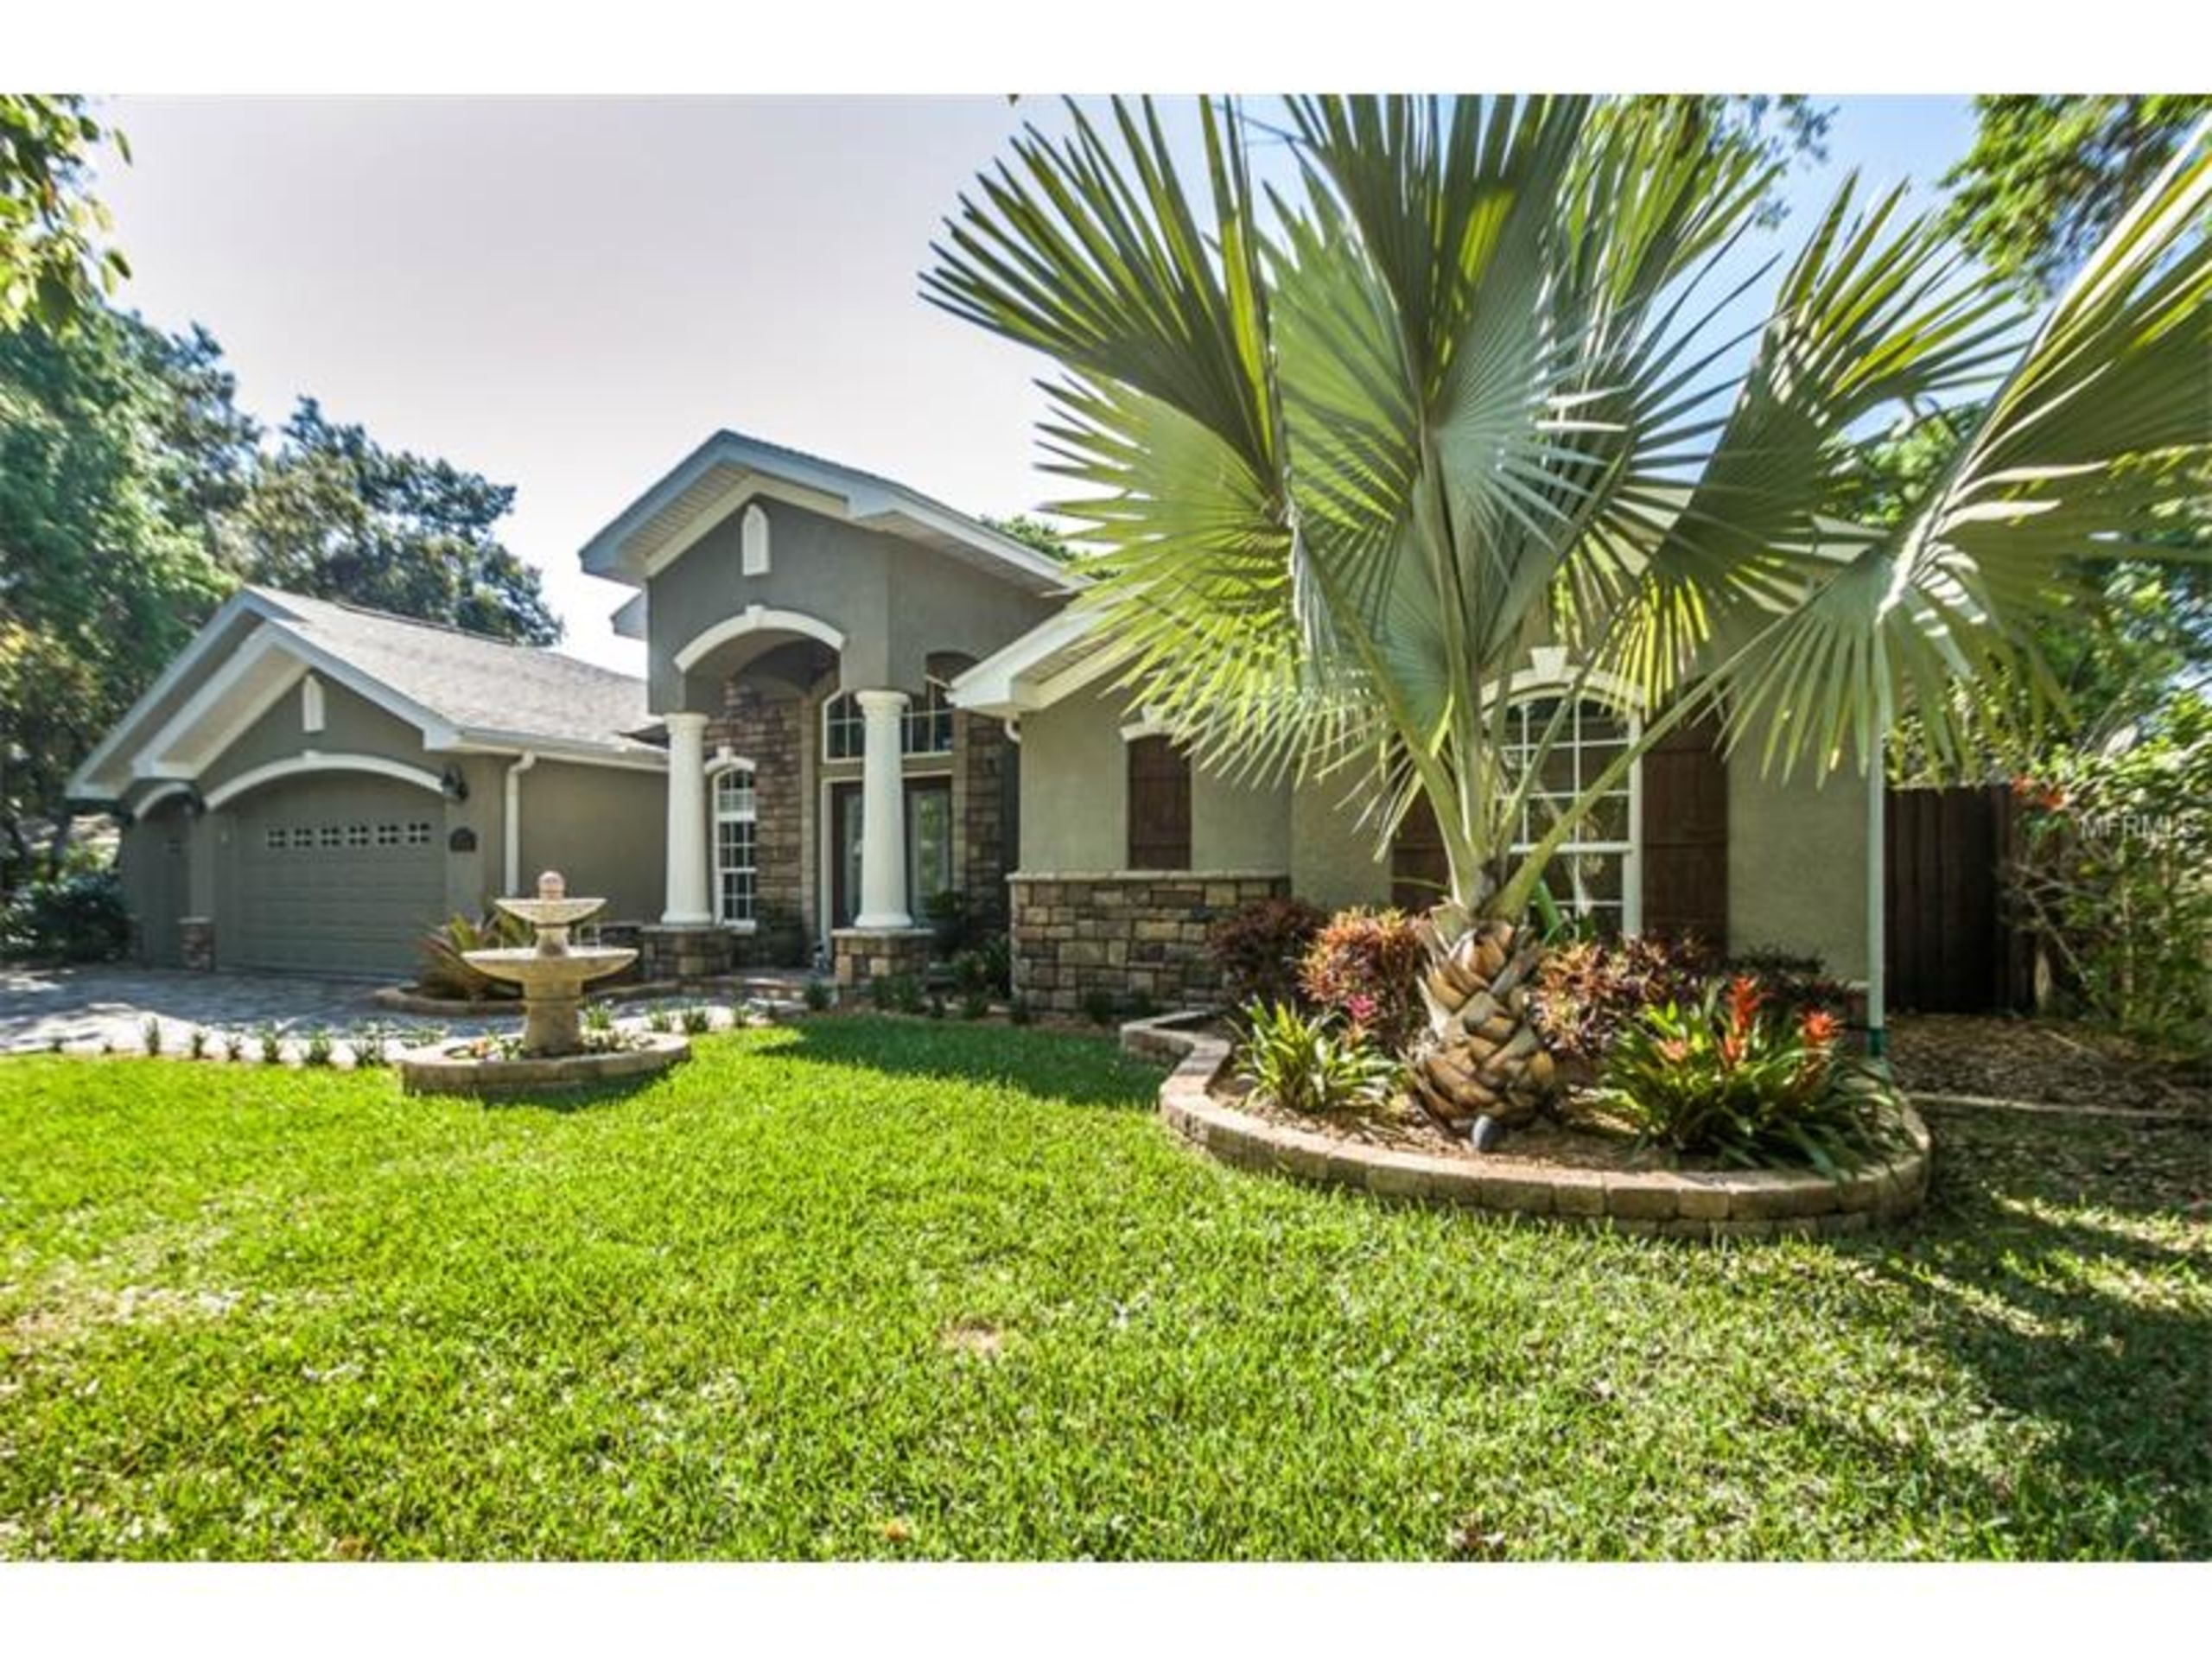 Custom built home on a tree-lined street in OAK FOREST, Seminole, FL